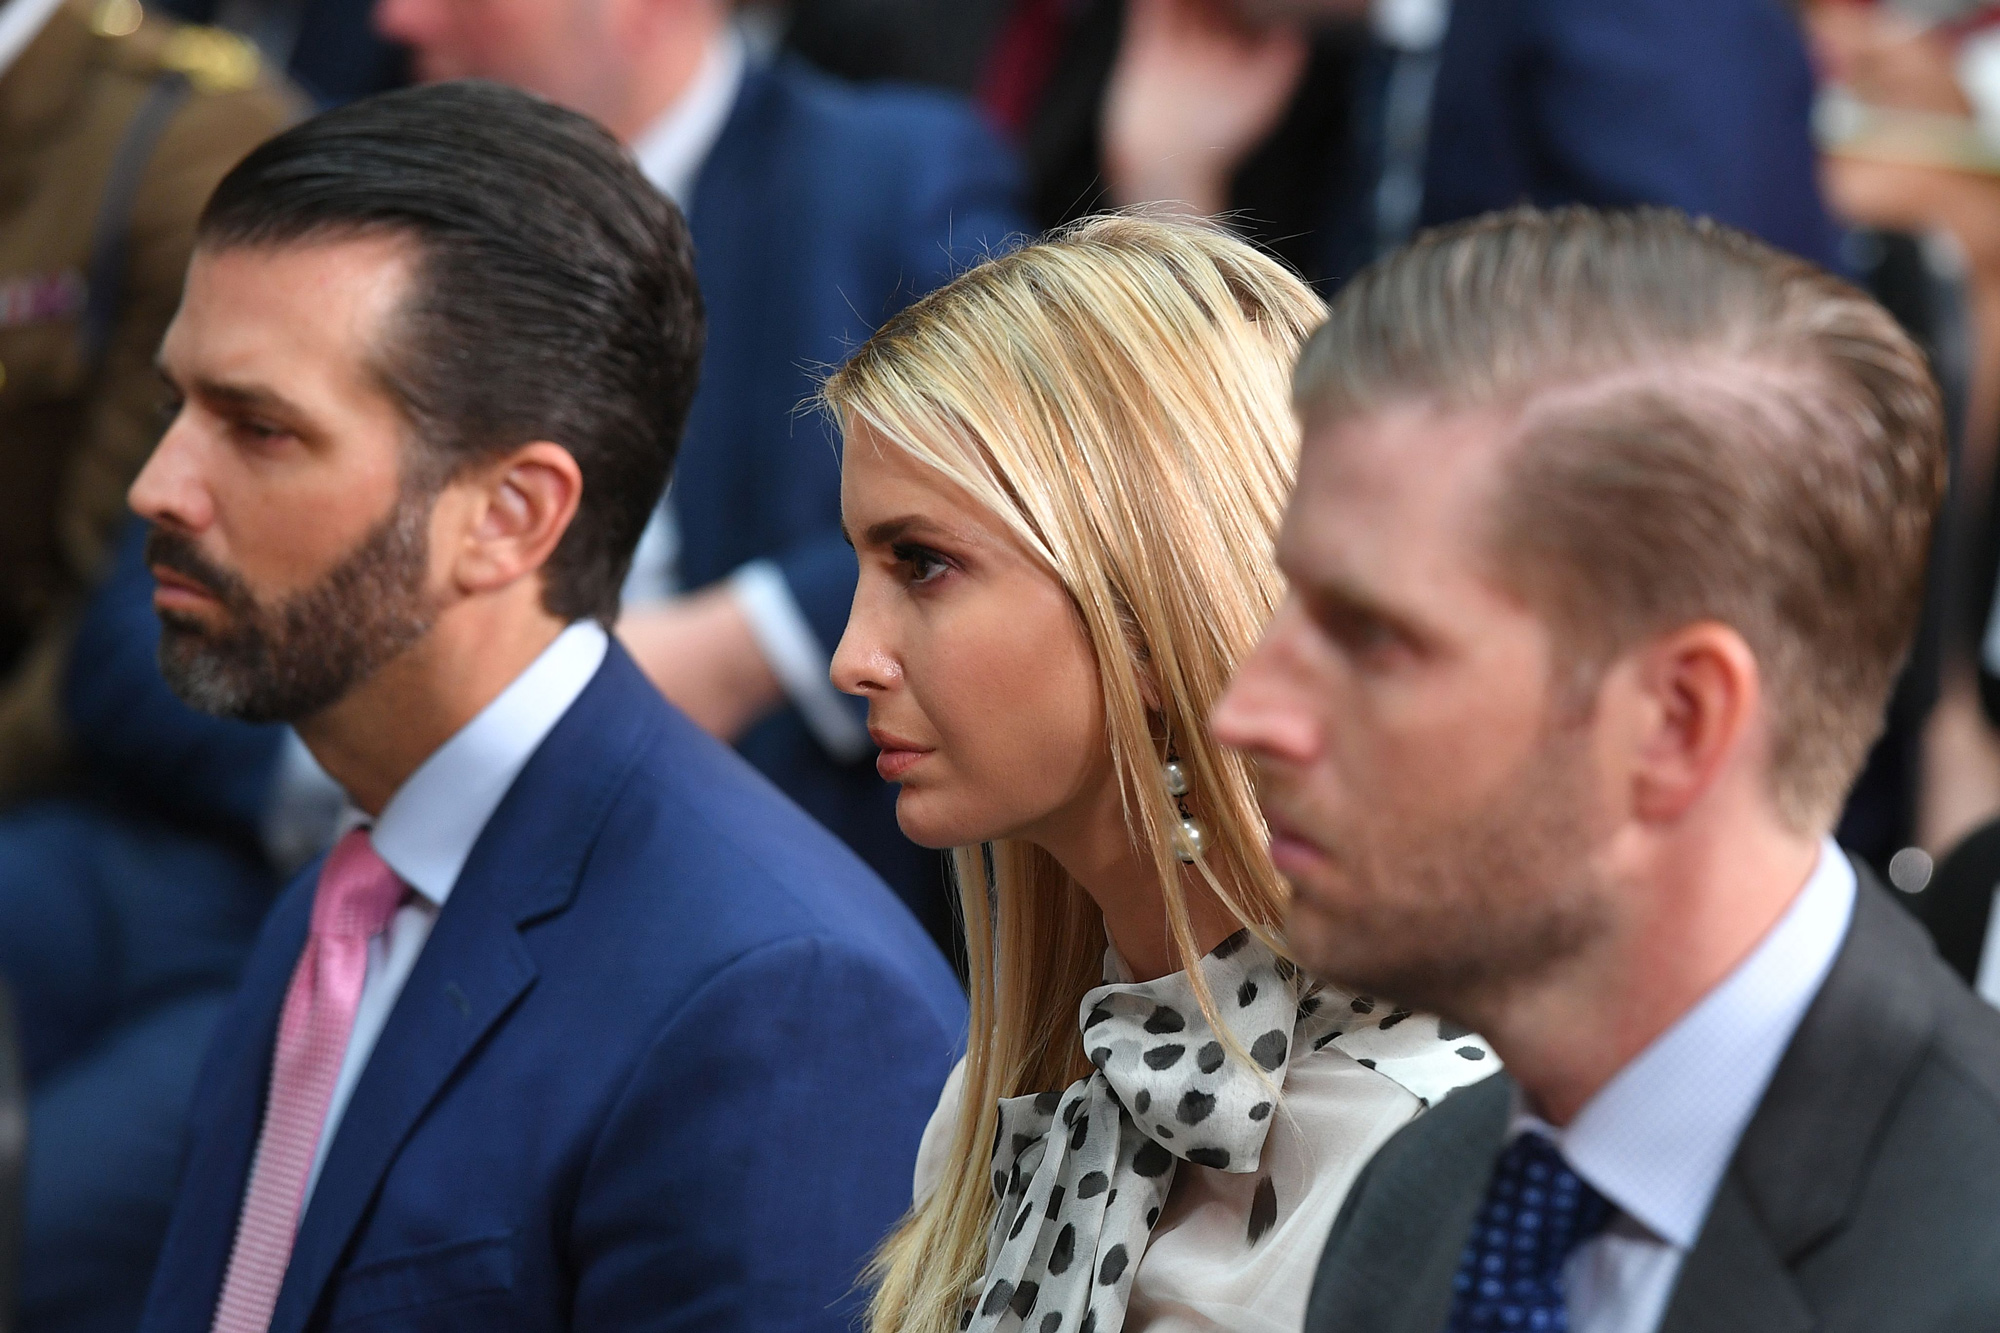 Donald Trump Jr., left, Ivanka Trump, center, and Eric Trump listen during a joint press conference at the Foreign and Commonwealth office in London on June 4, 2019.